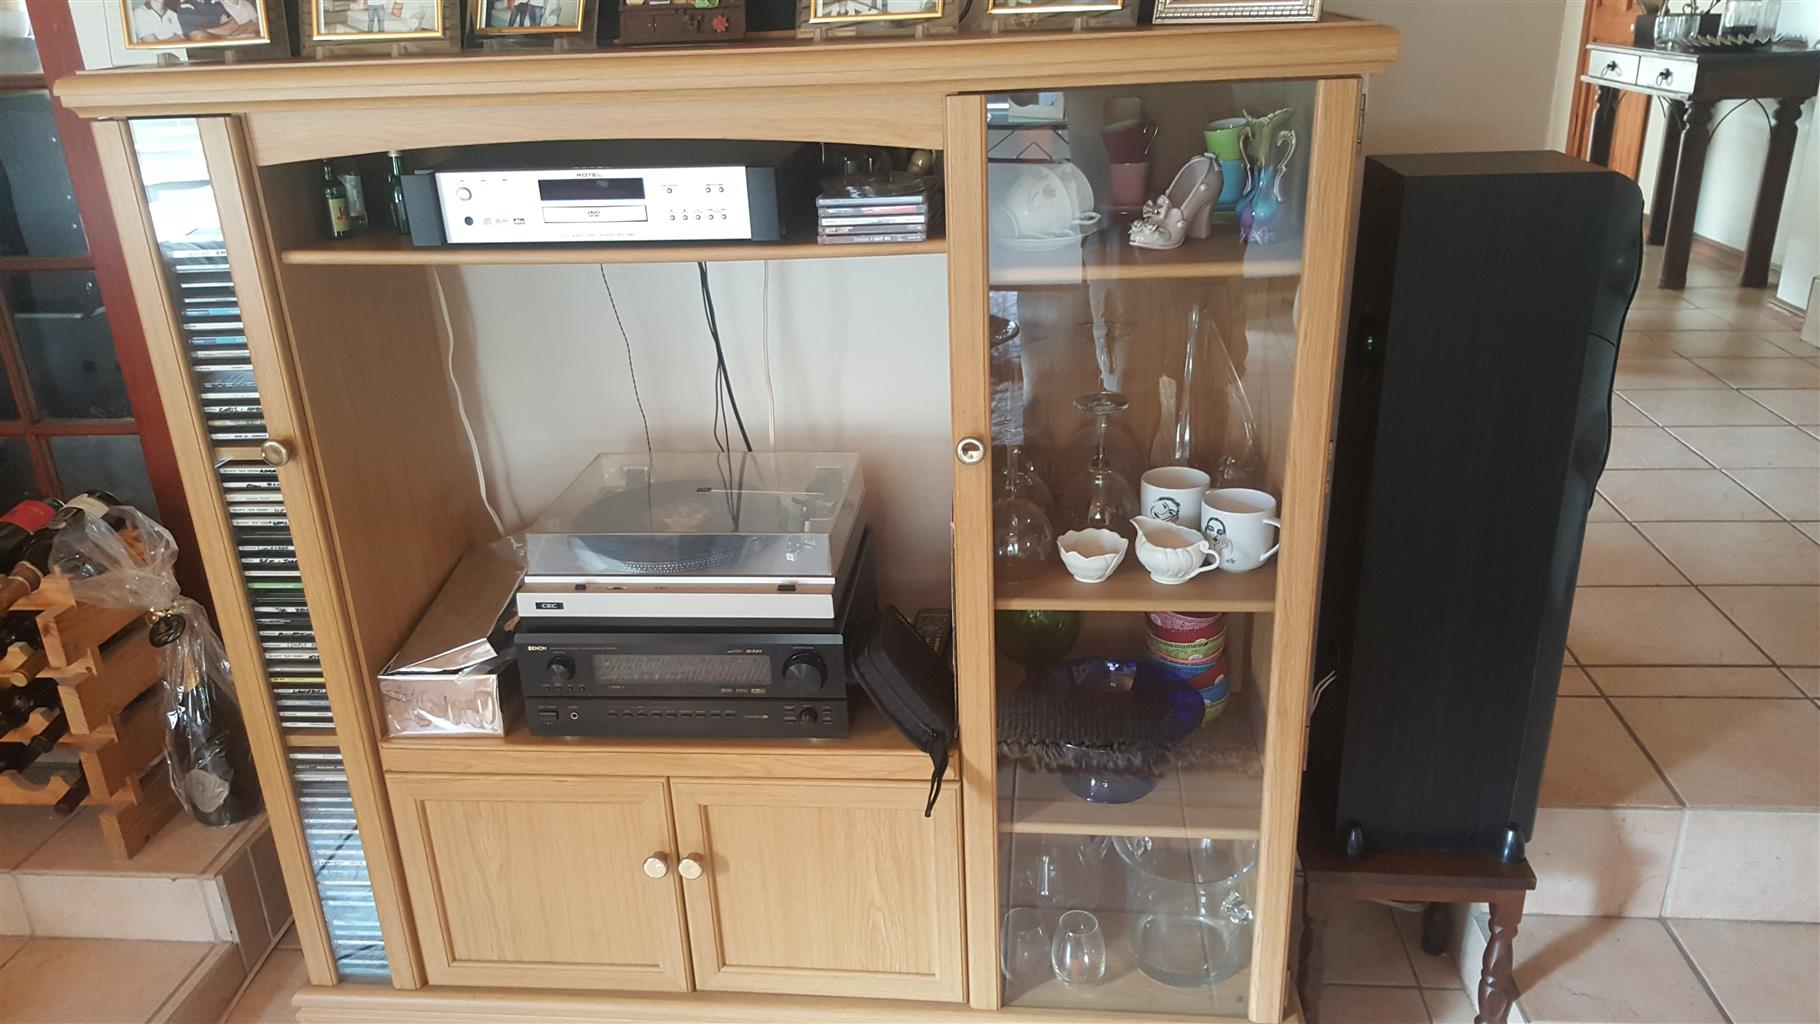 Holiday Home Appliances for sale: